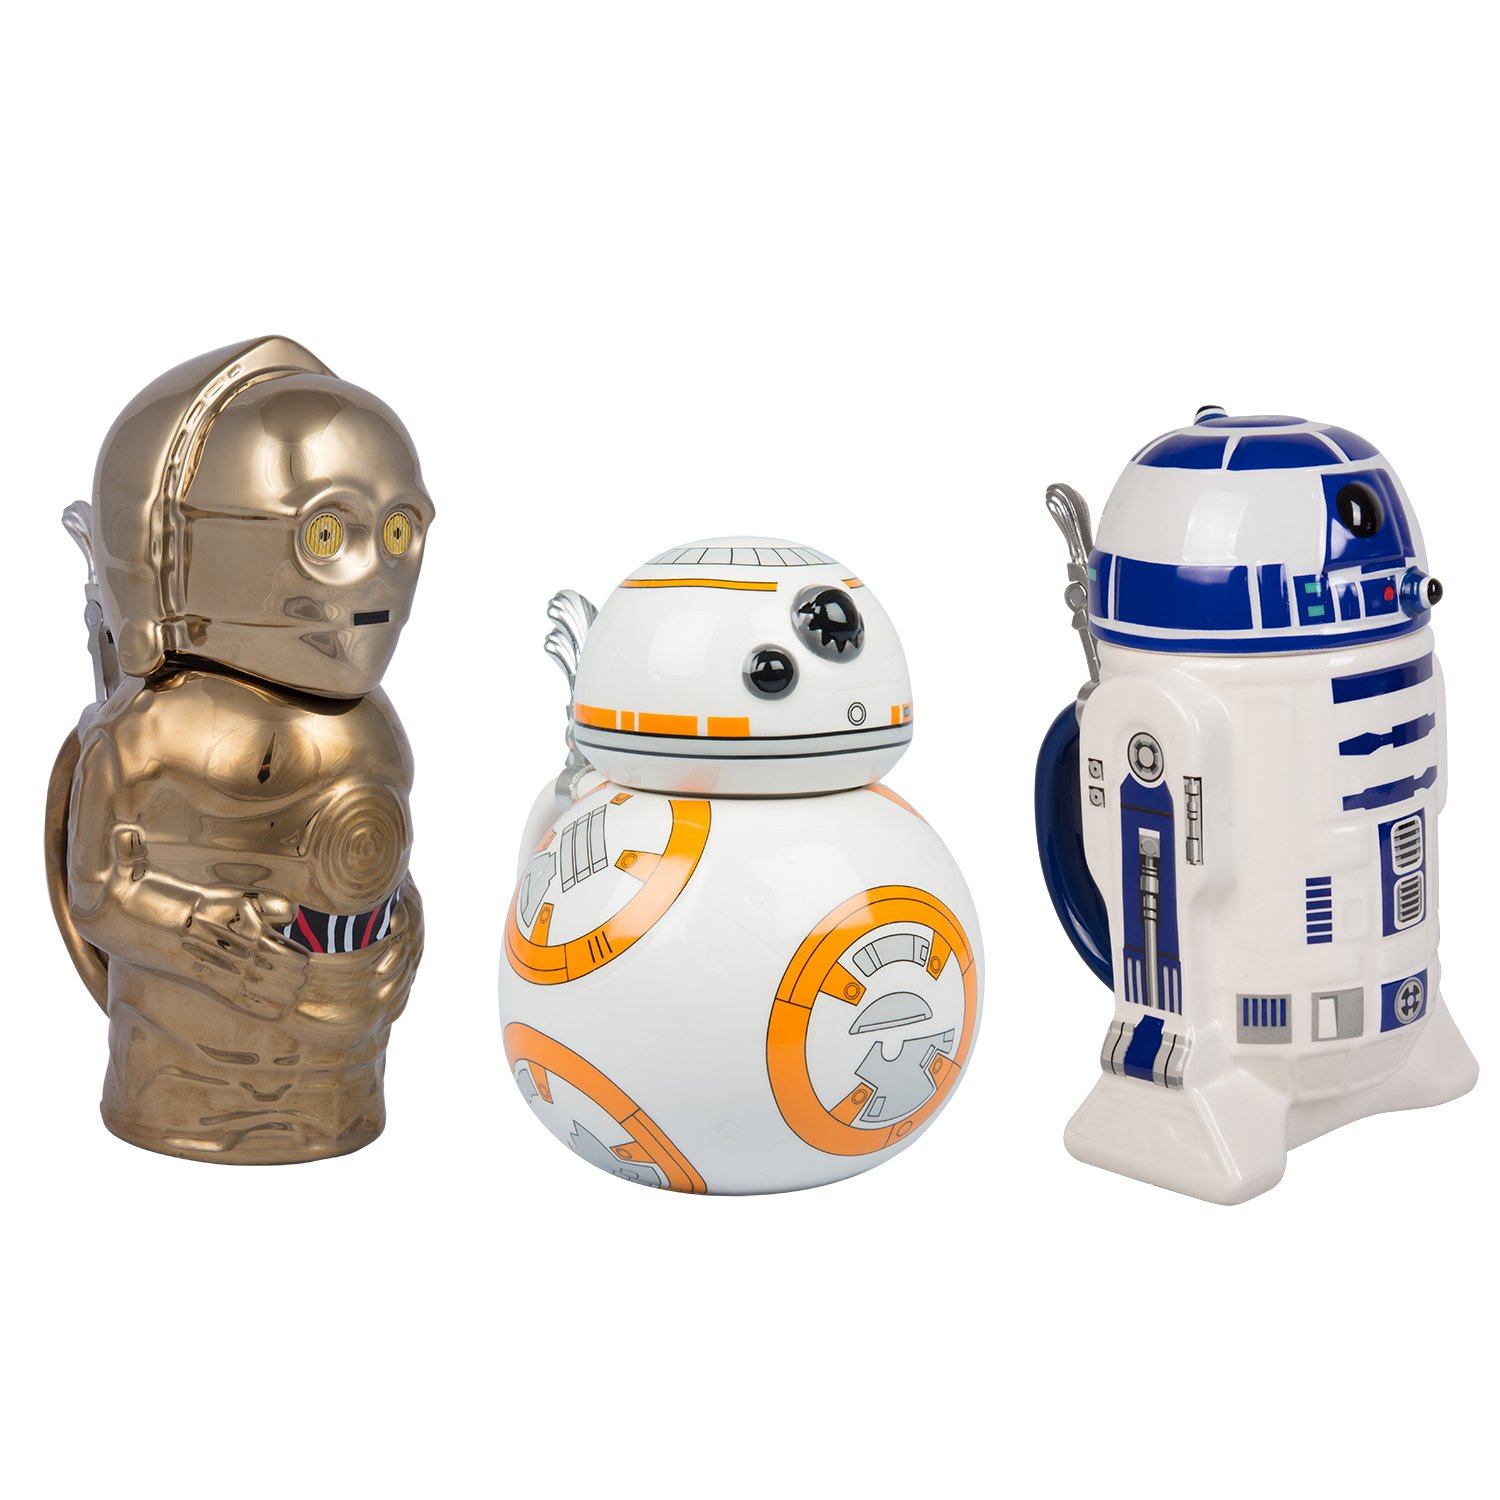 Star Wars BB-8, R2-D2 and C-3PO Ceramic Beer Steins with Hinged Lids - Set of 3-32 oz